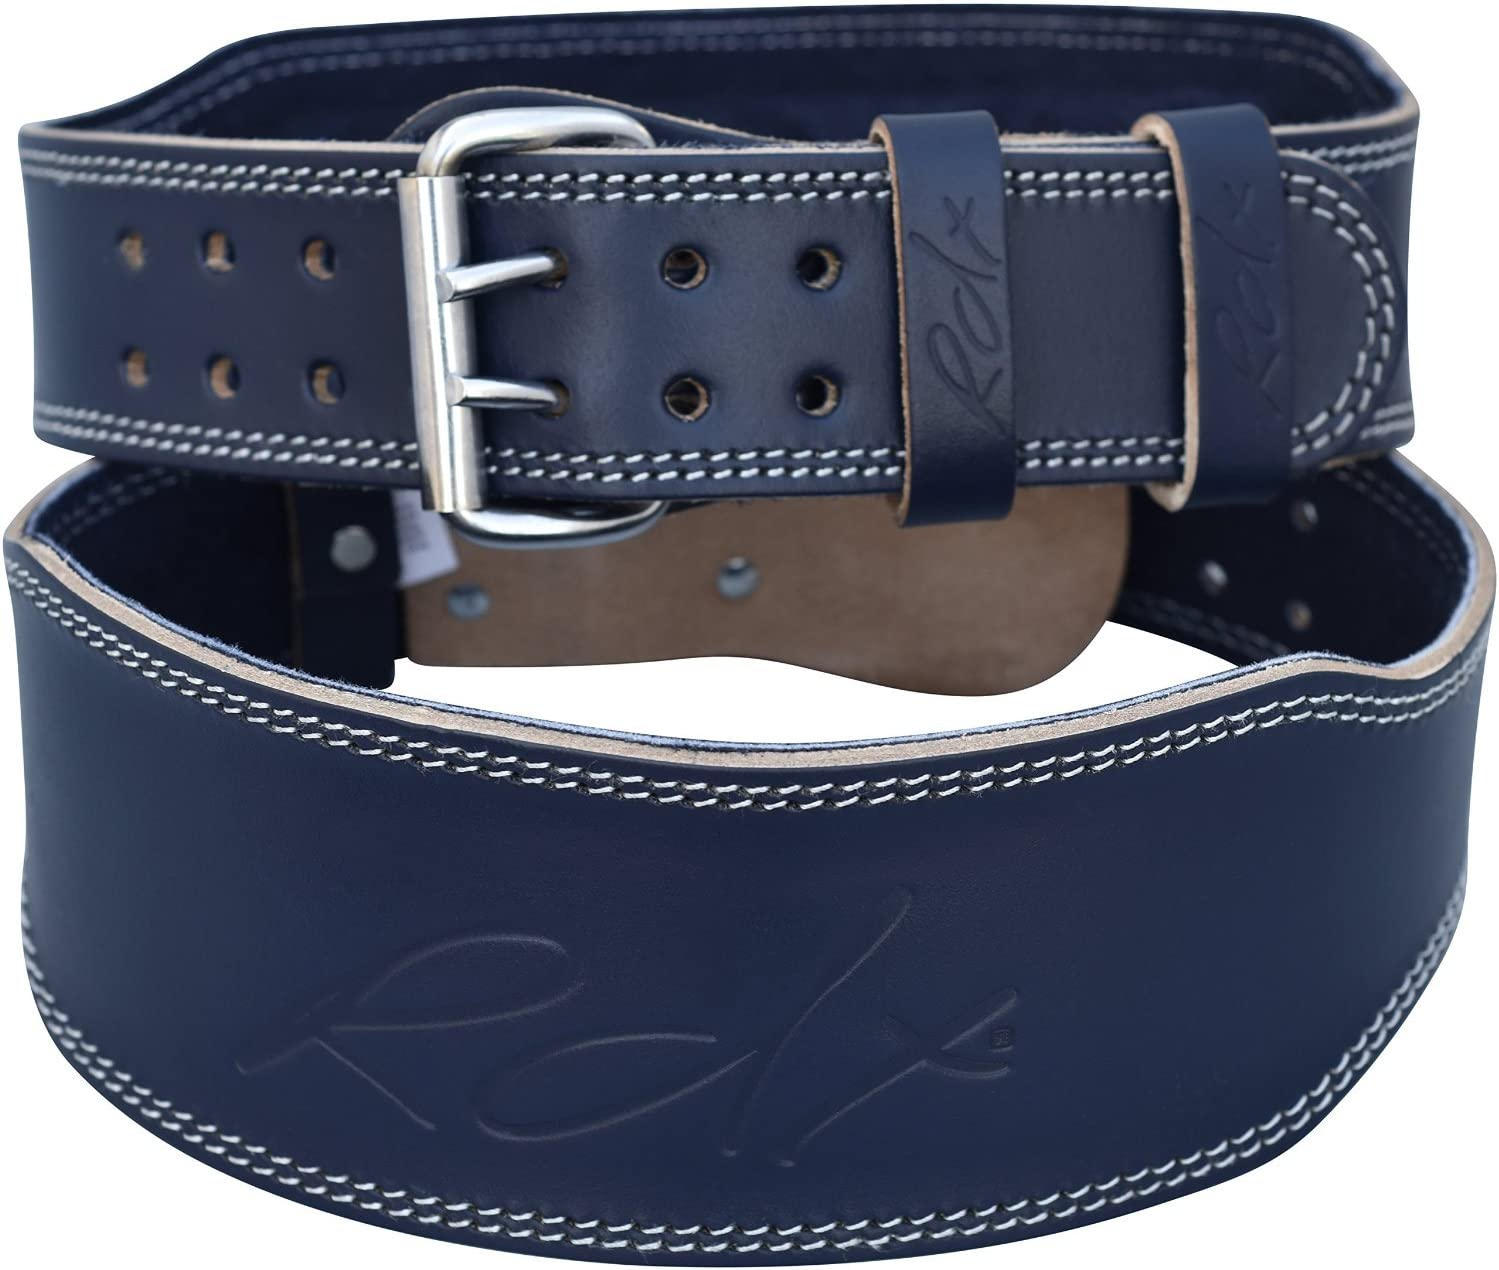 """Double Prong Cowhide Leather Belt with 4/"""" Padded Lumbar Back Support Deadlifts Workout /& Squats Exercise RDX Weight Lifting Belt for Fitness Gym Training Great for Bodybuilding Powerlifting"""